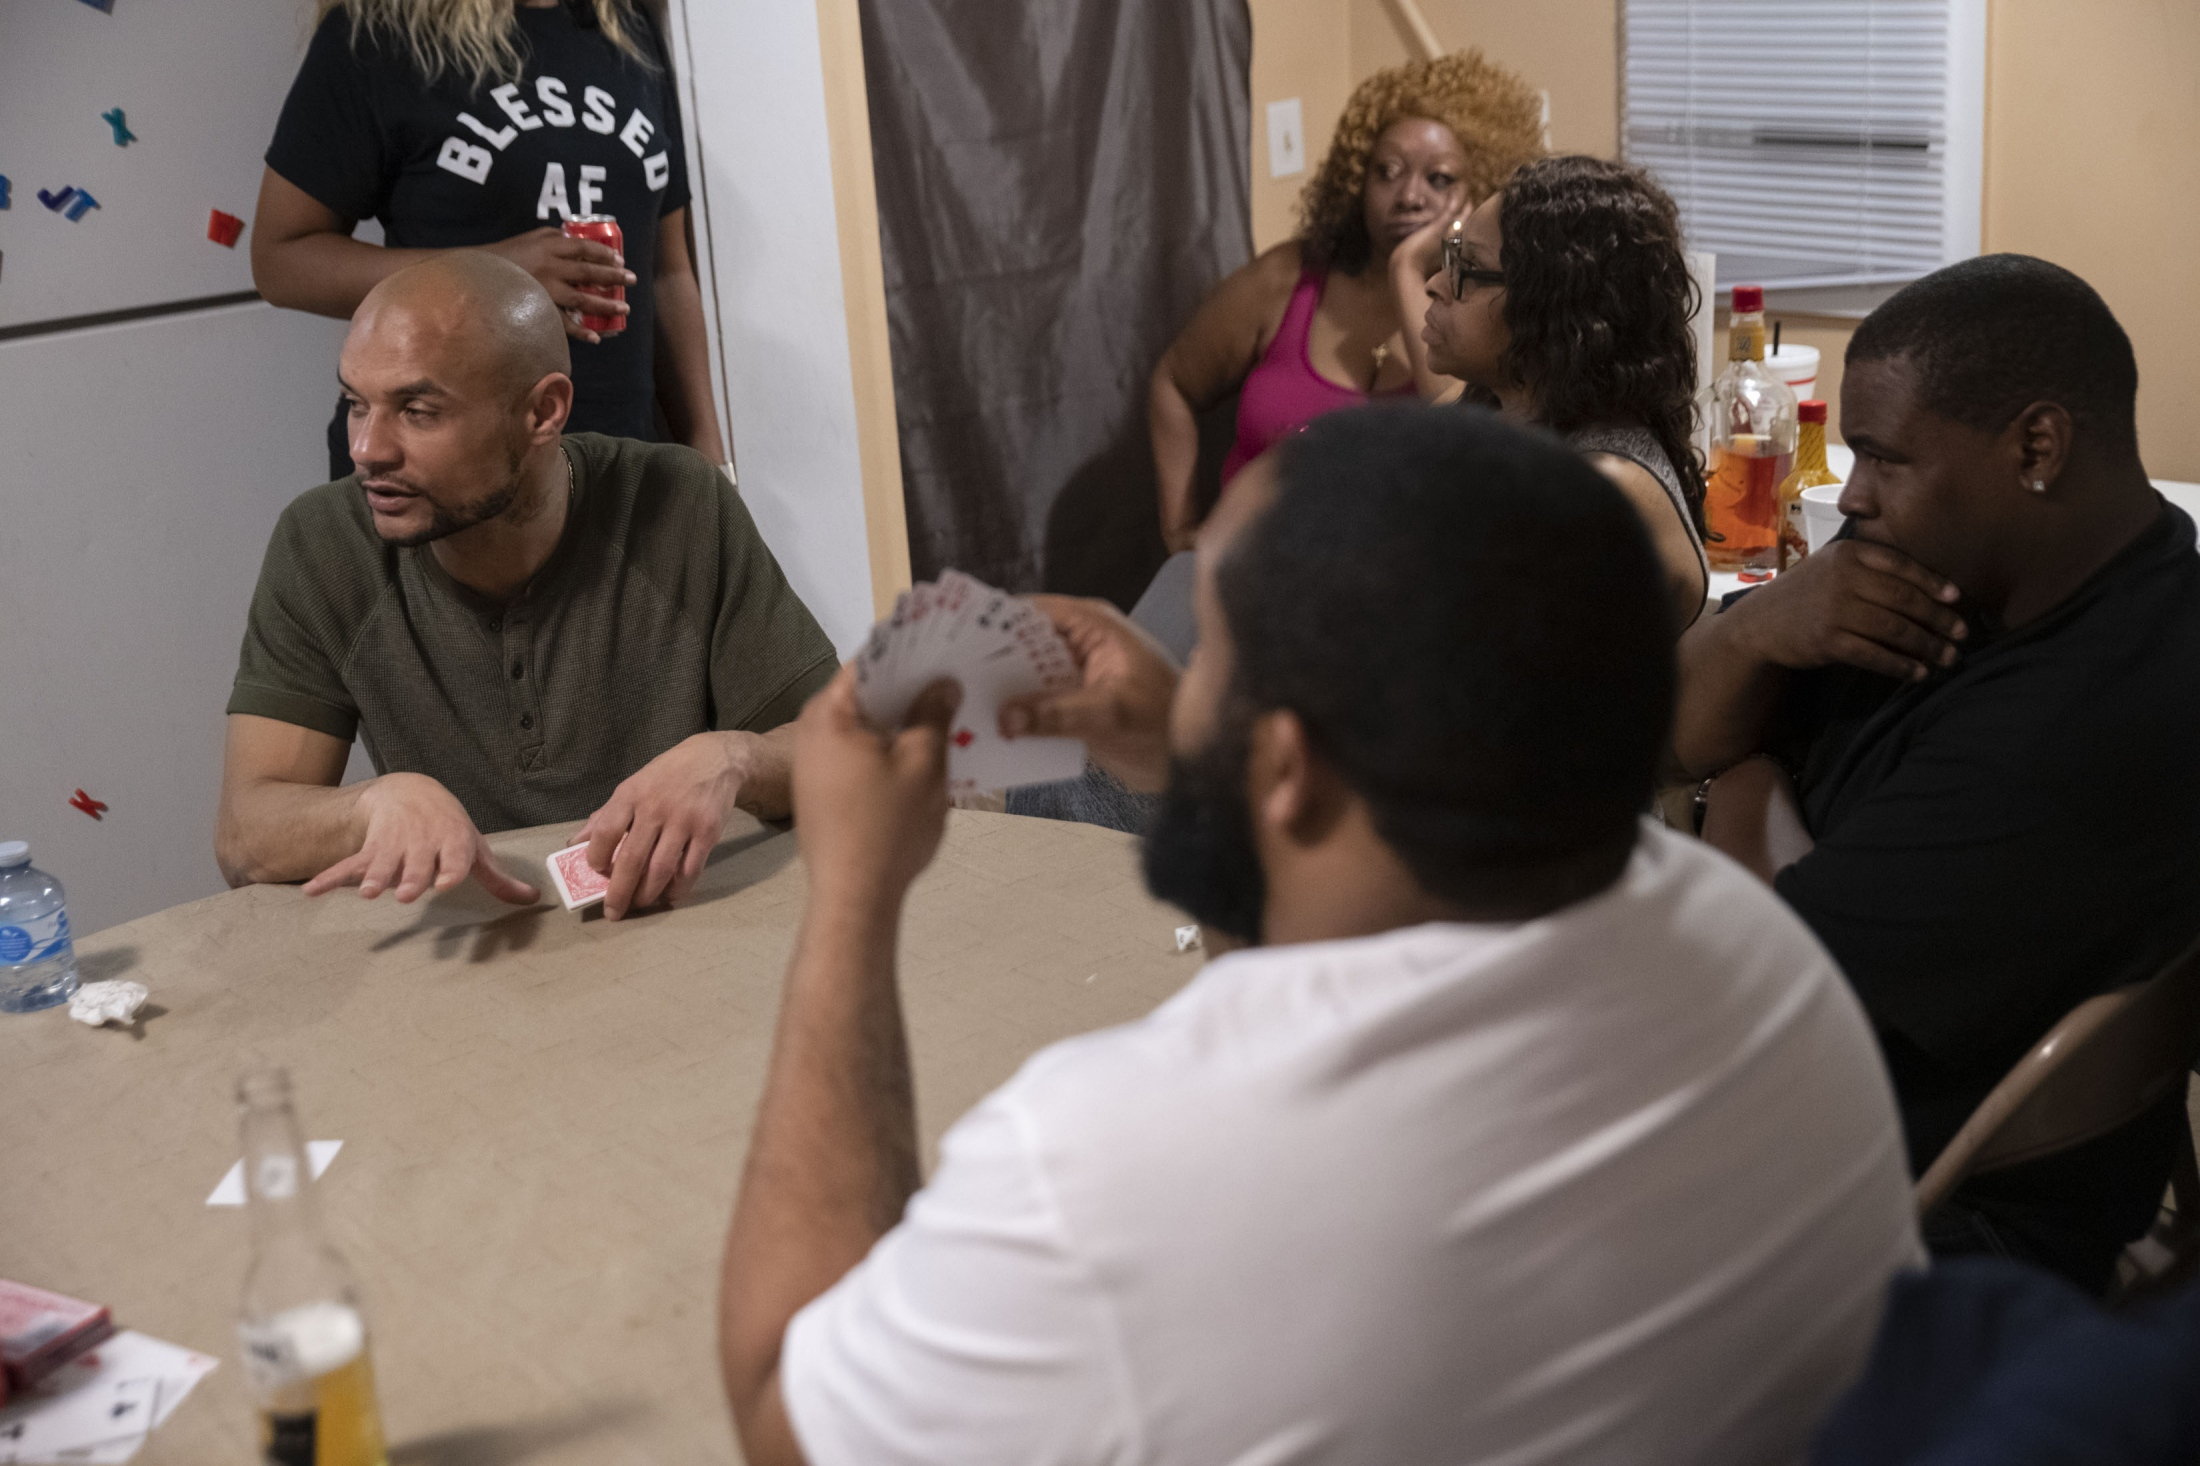 Morrice and family play spades during the reunion.